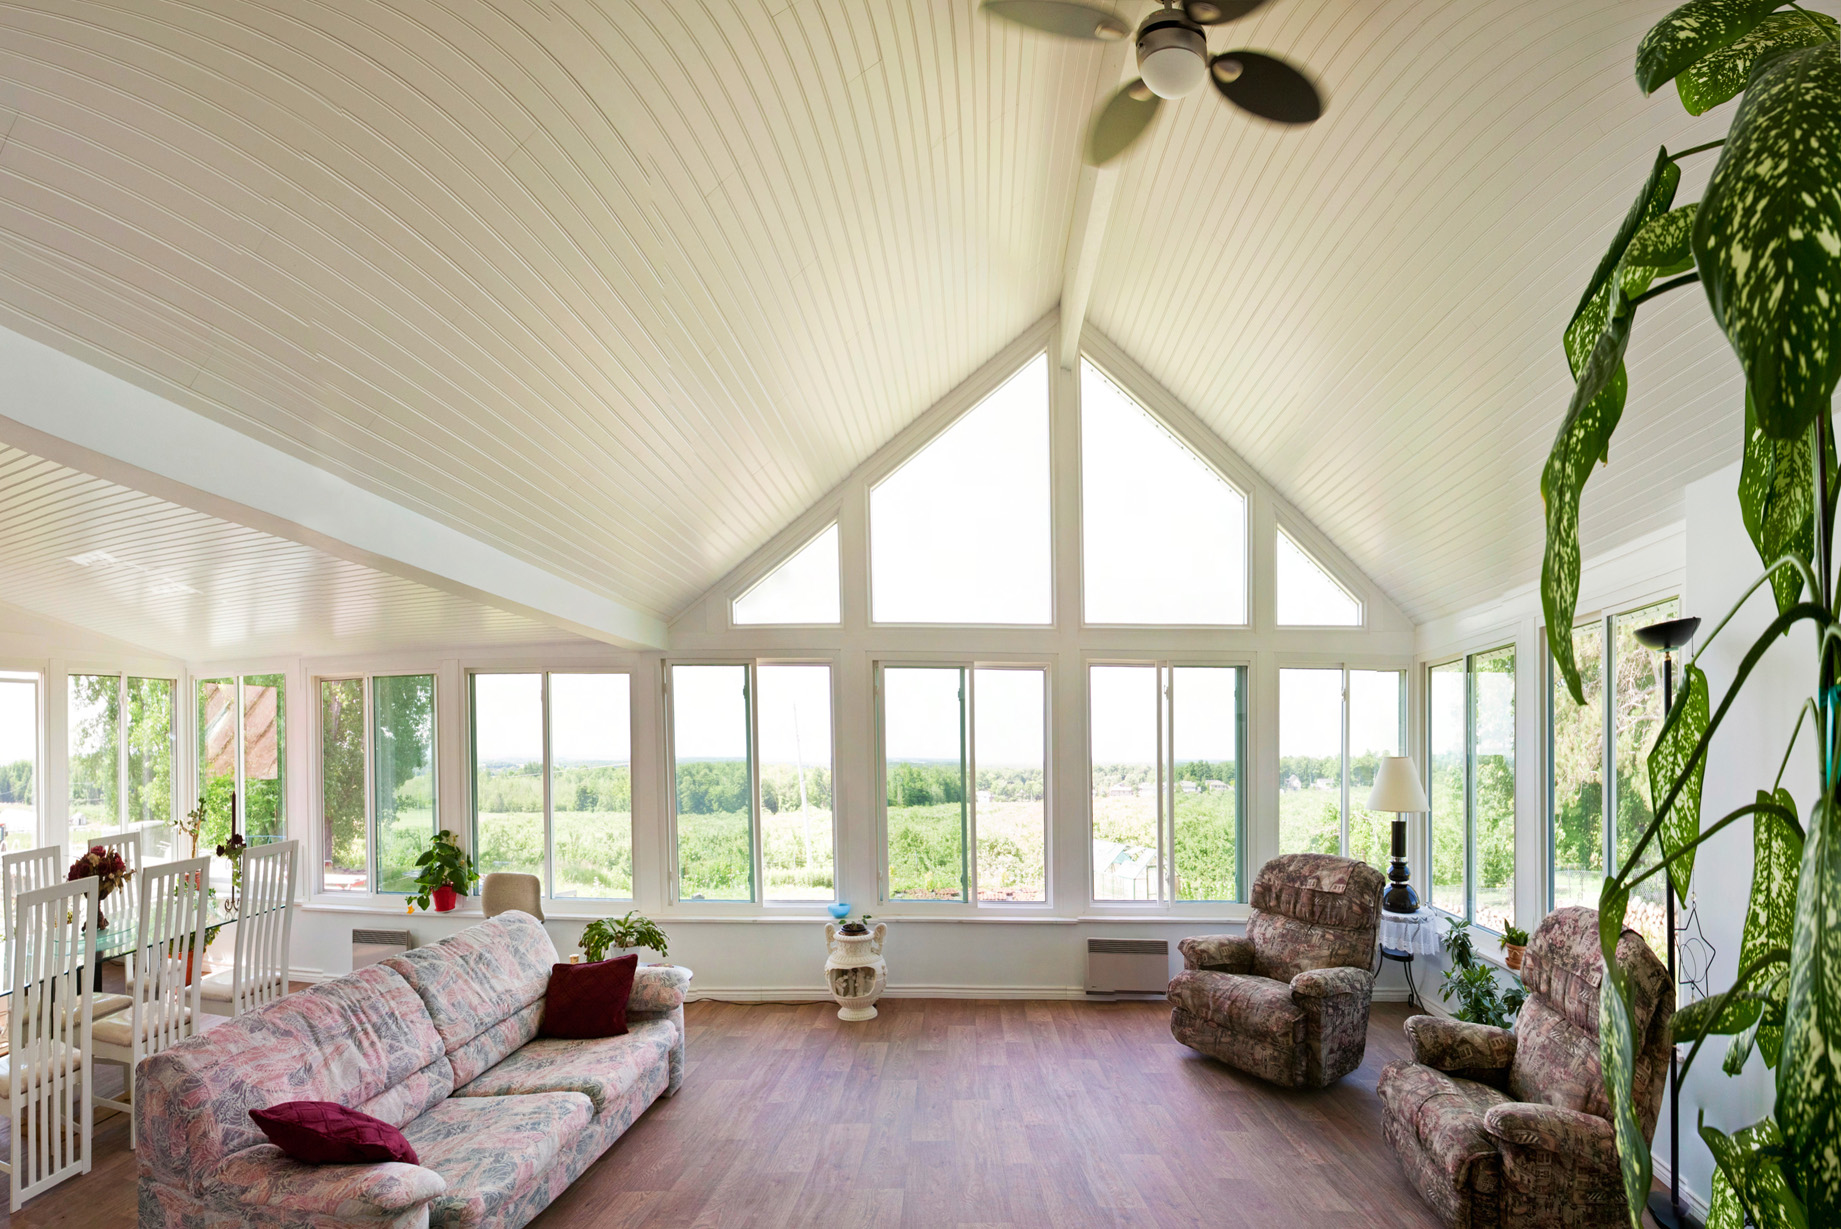 A ridge beam provides support to your sunroom